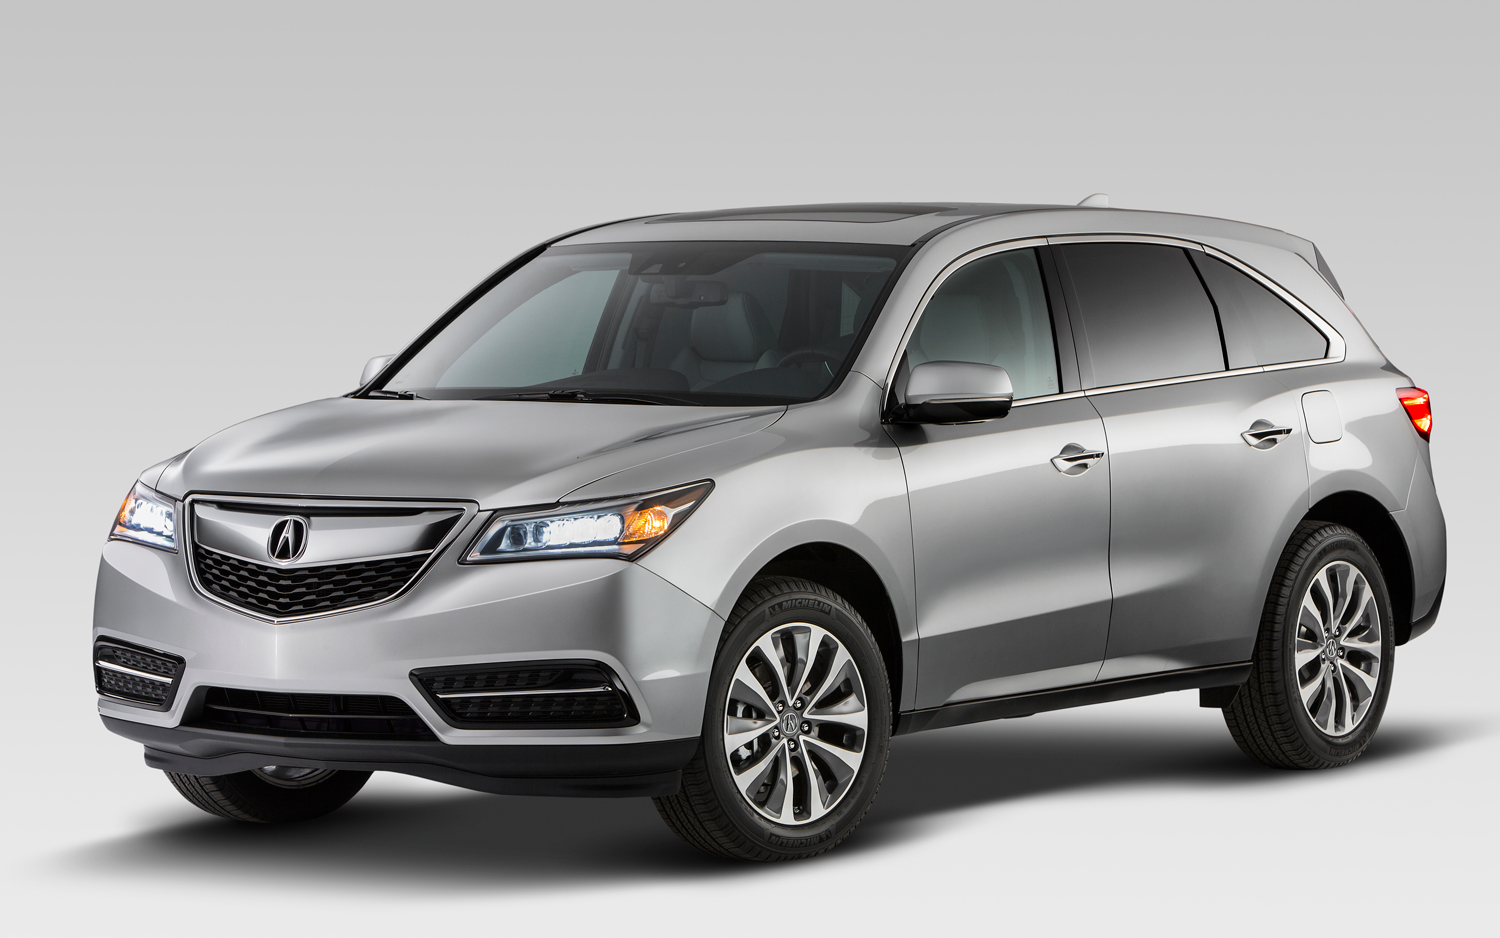 2014 Acura MDX Front Photo Gallery Free Download Image Of